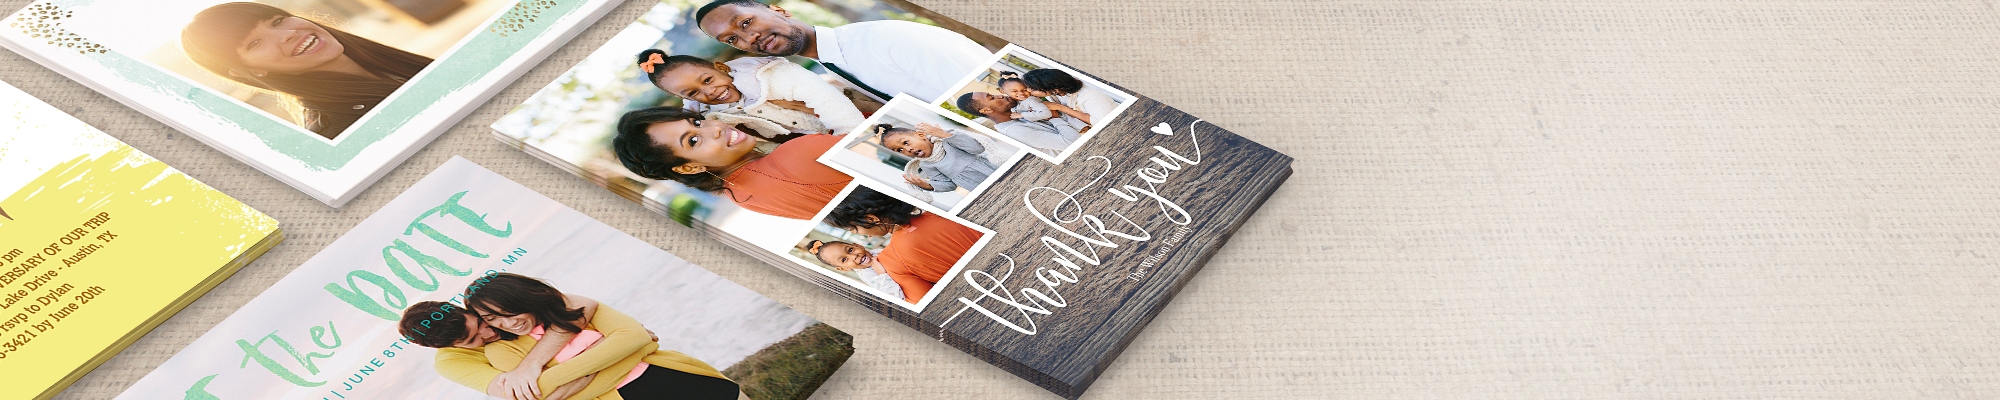 Photo Cards Embrace autumn with warm tidings and meaningful get-togethers.